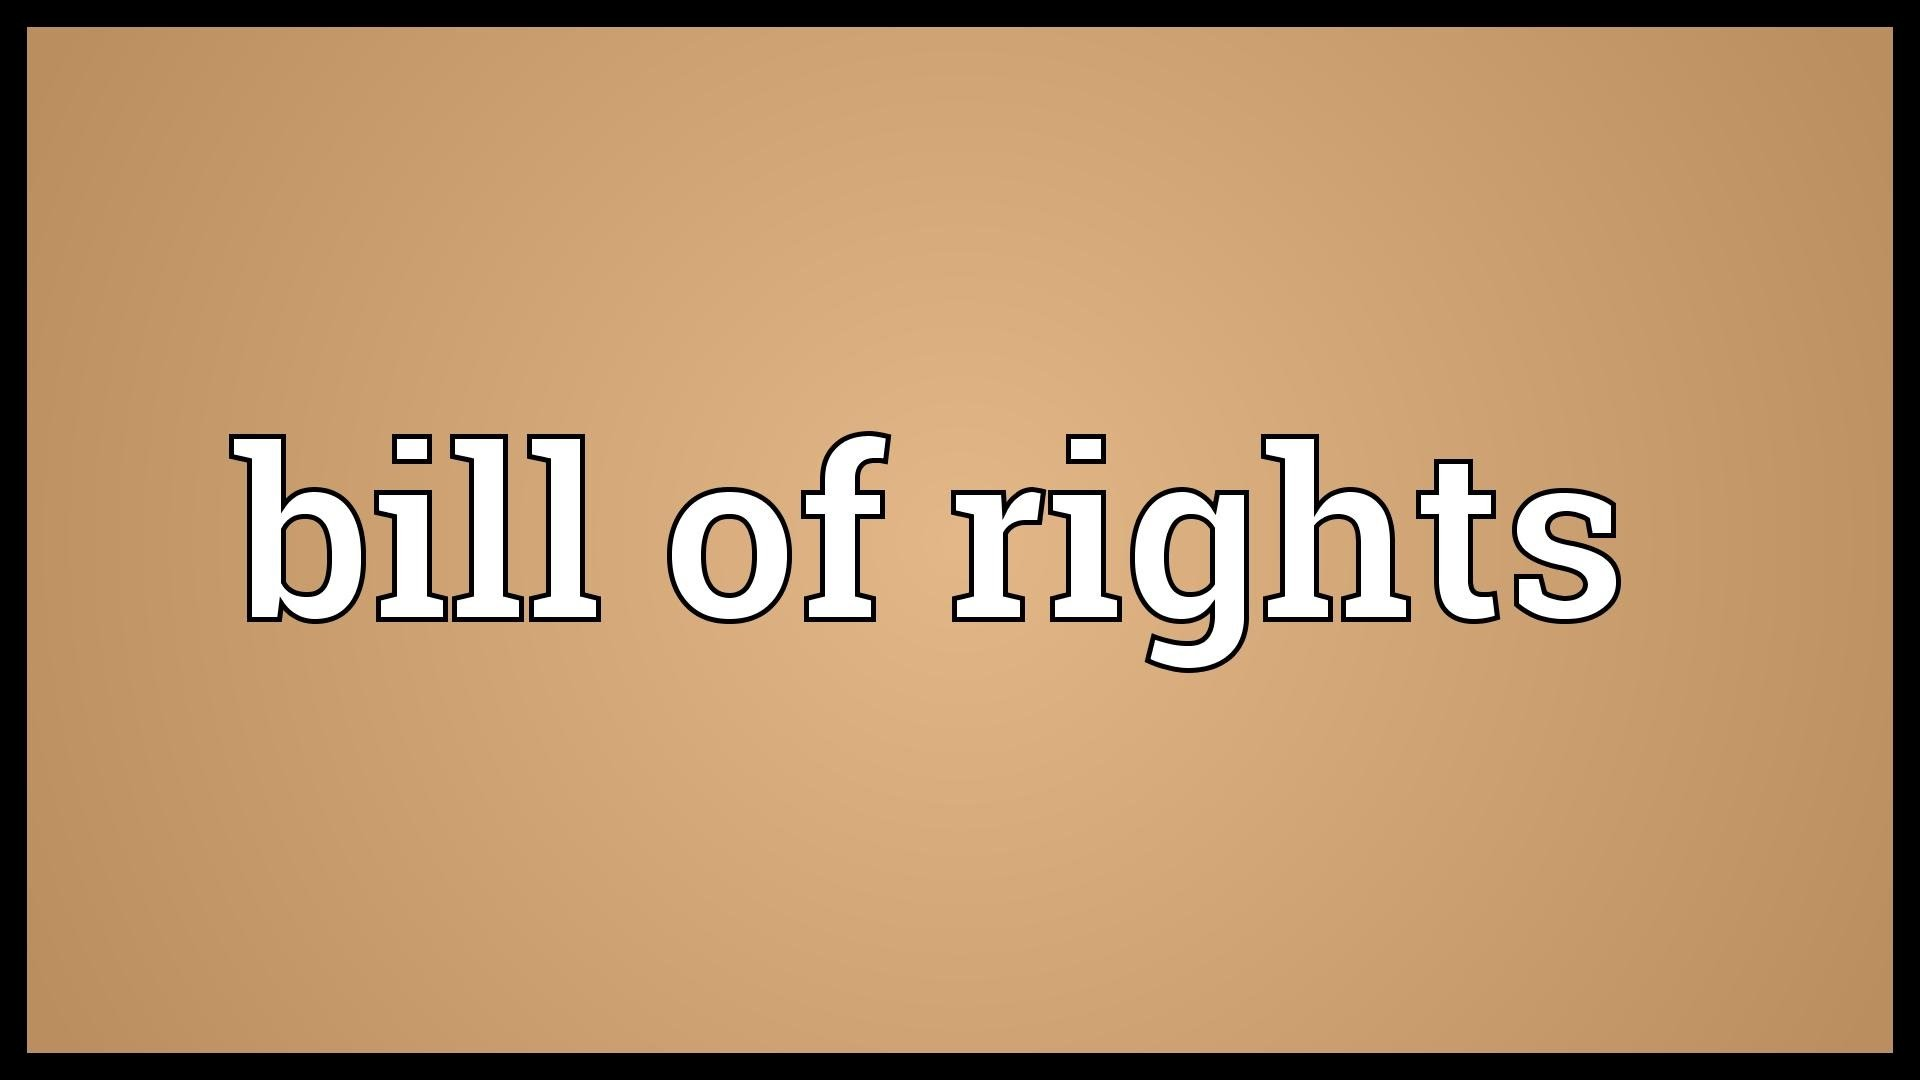 1920x1080 Bill of rights Meaning